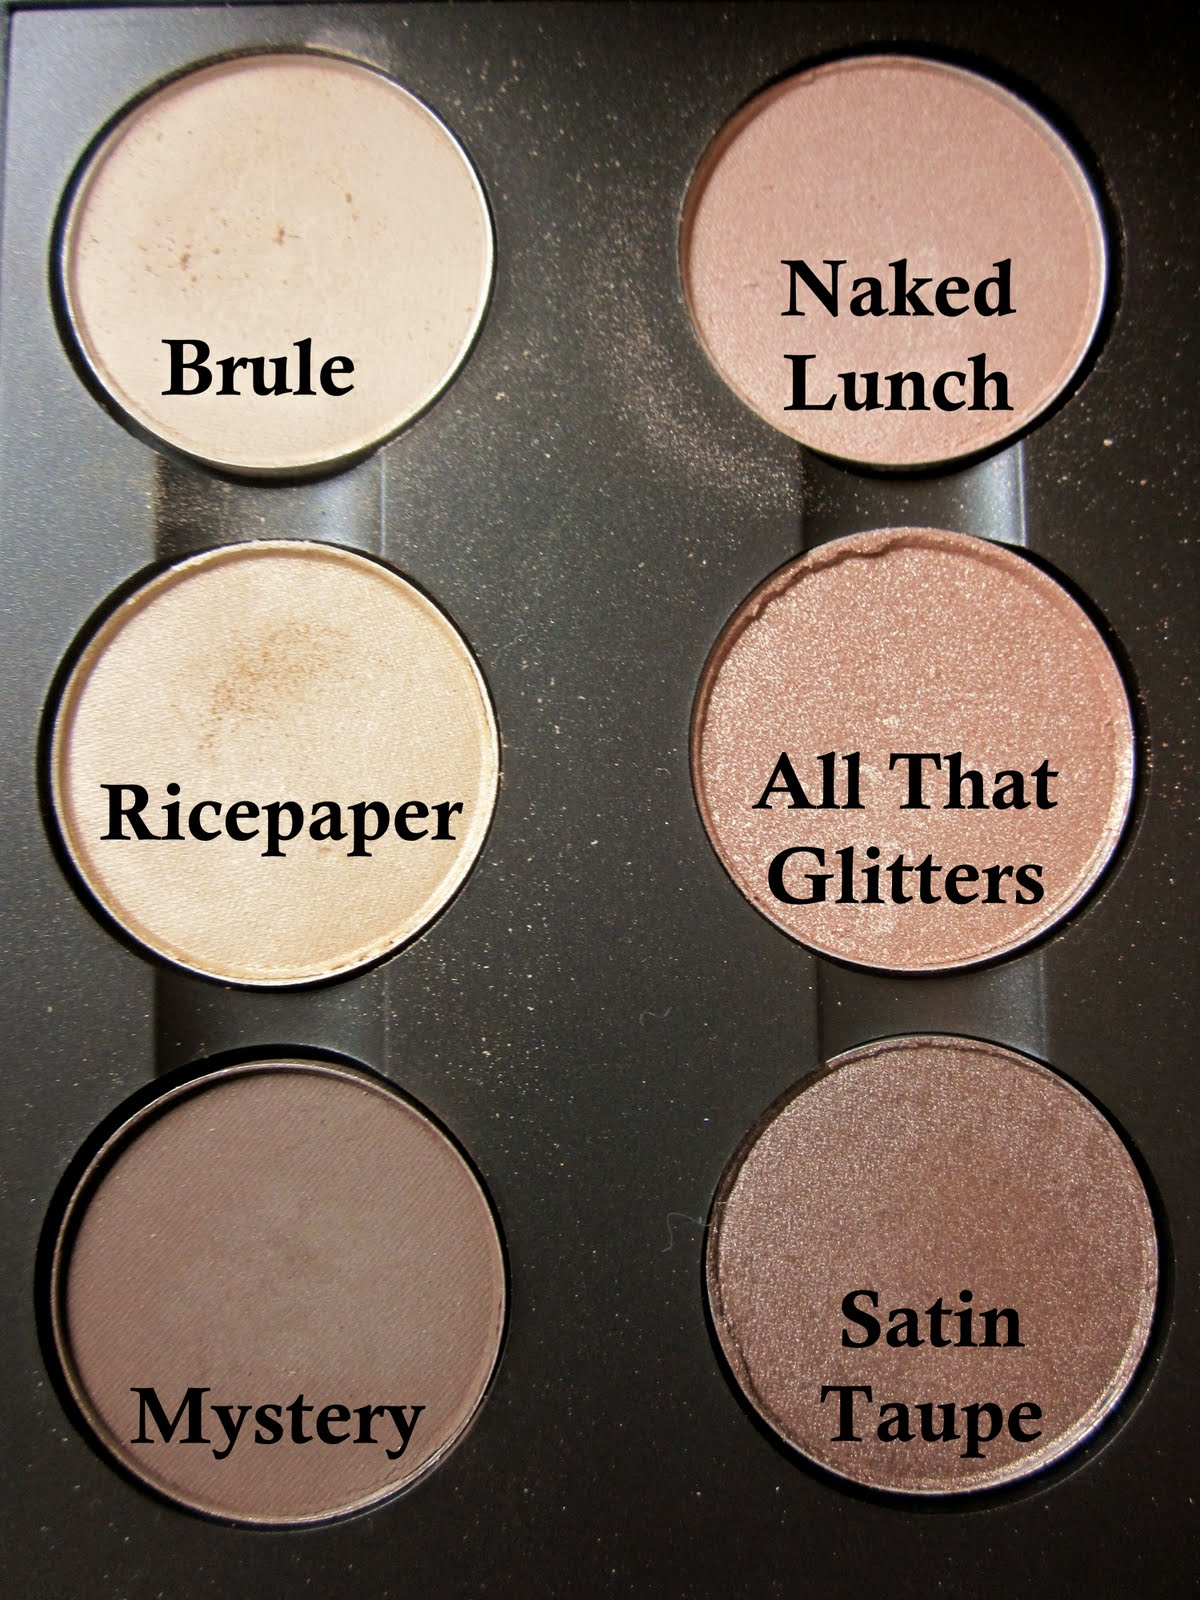 MAC All That Glitters Eye Shadow 1 - Top 11 Most Popular Eye Shadows from MAC for Indian Skin Tone